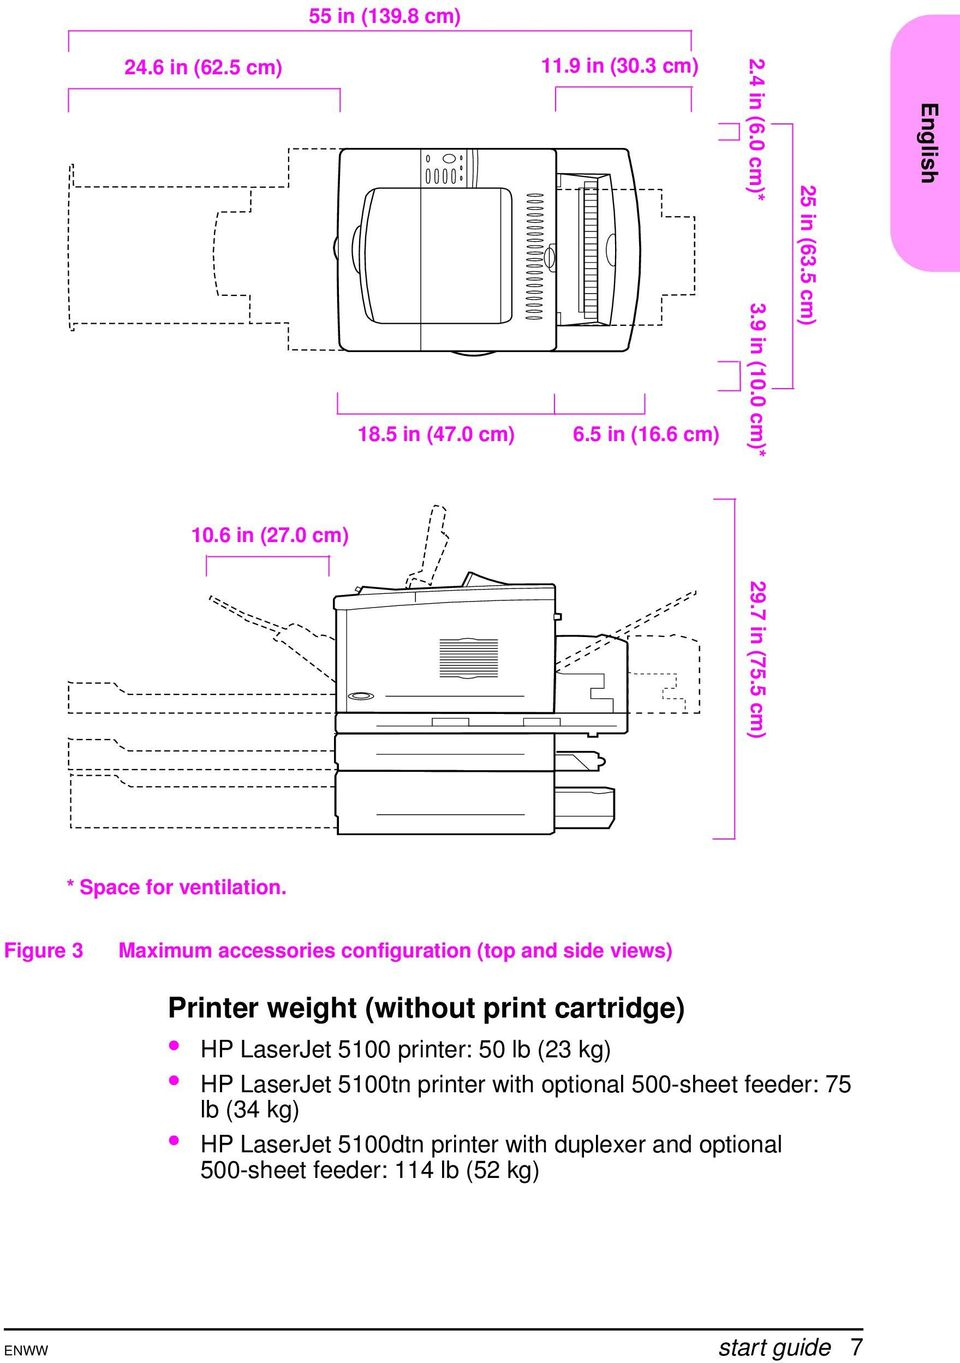 Figure 3 Maximum accessories configuration (top and side views) Printer weight (without print cartridge) HP LaserJet 5100 printer: